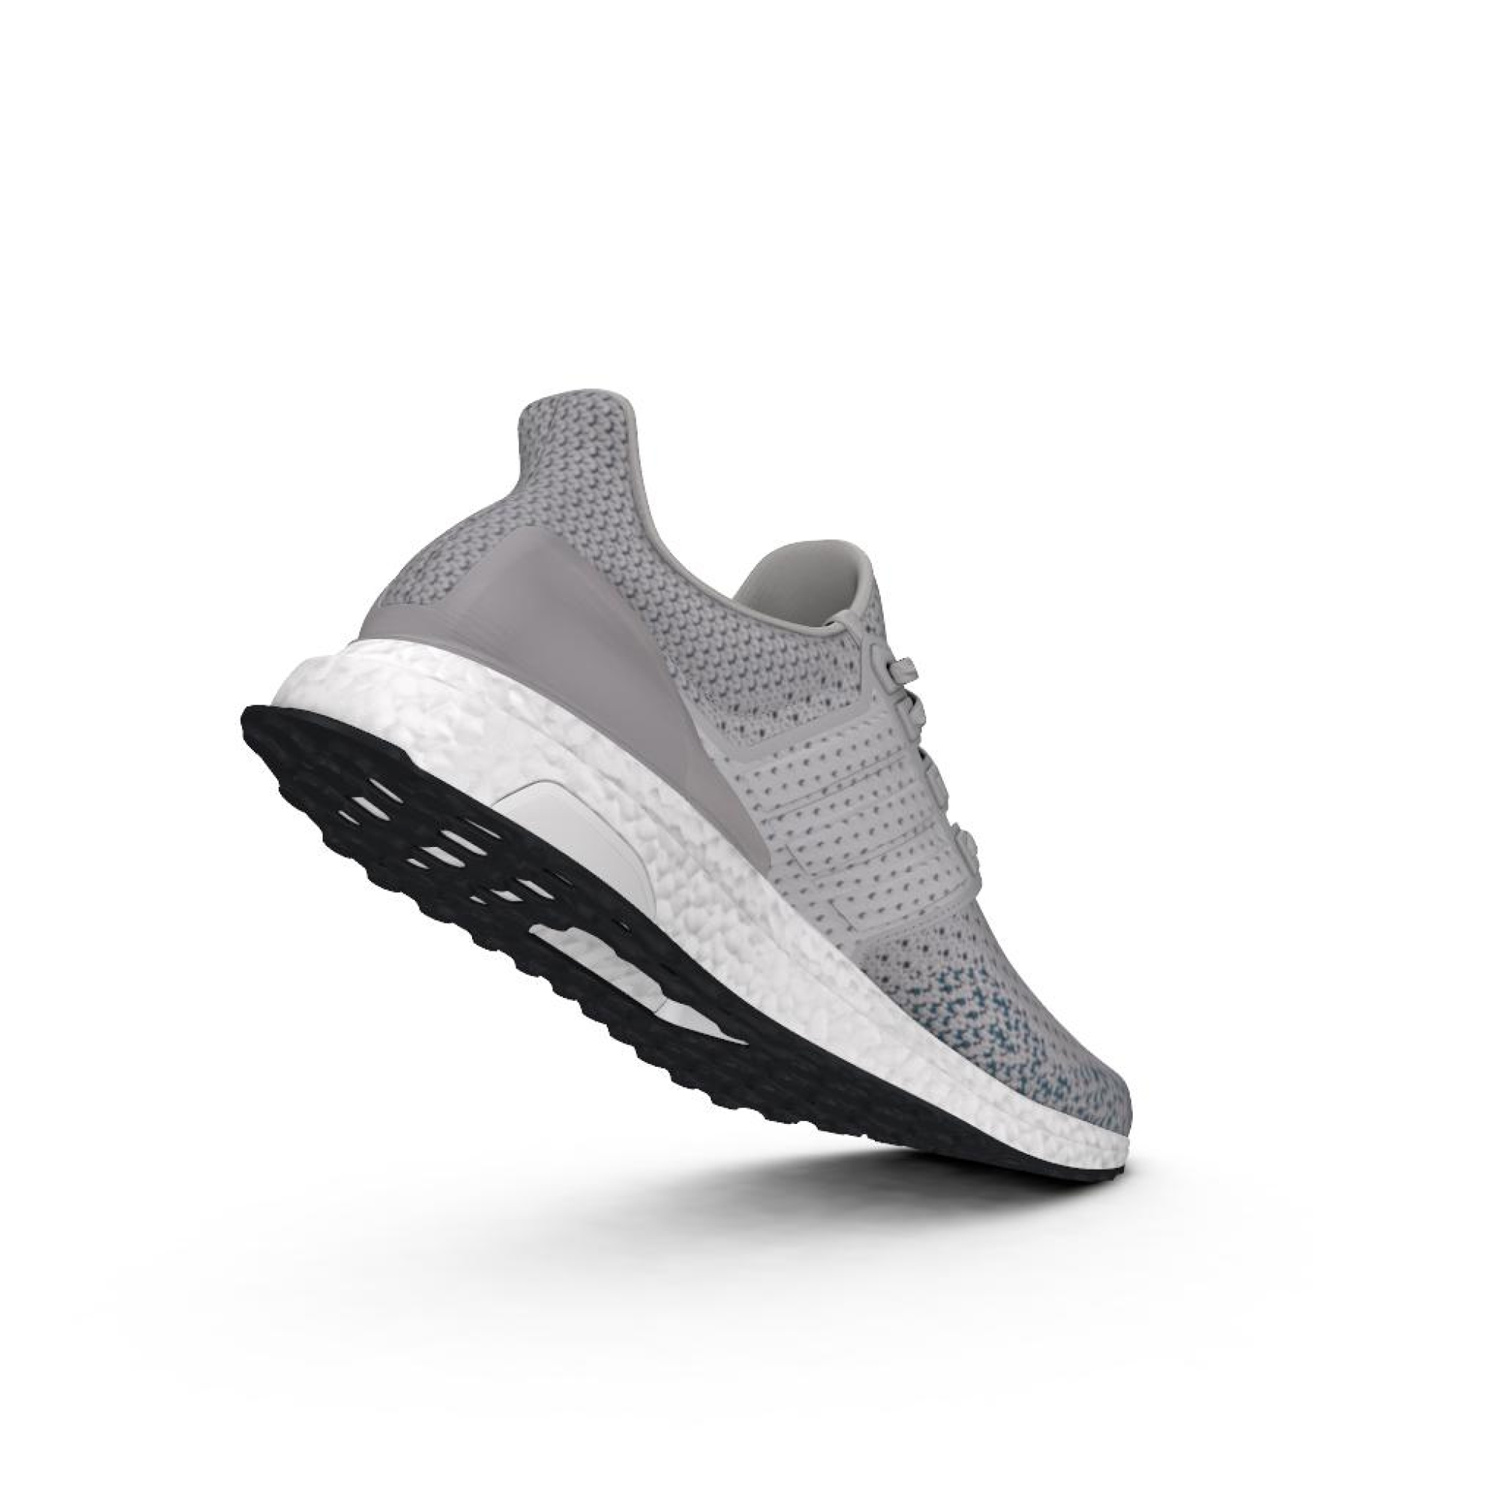 promo code for adidas ultra boost grau 3.0 download 86c38 456e6